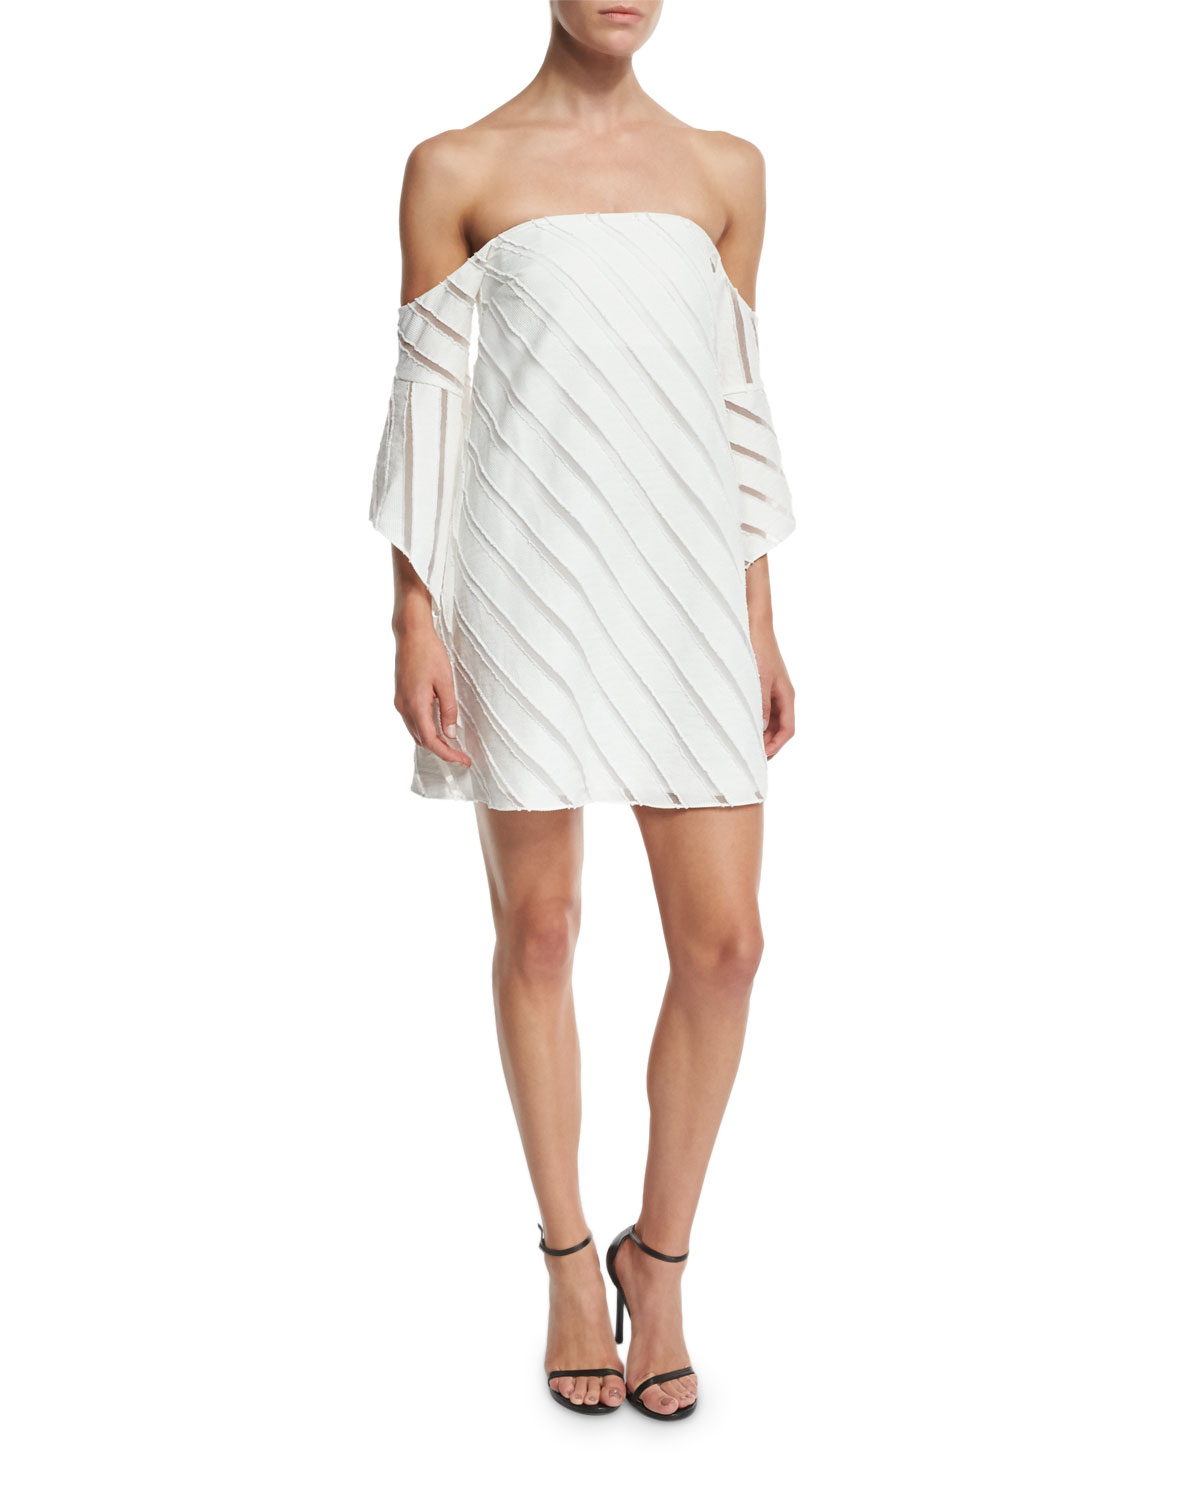 56ac30cb91bfd CAMILLA AND MARC Statice Off-the-Shoulder Striped Mini Dress, White ...